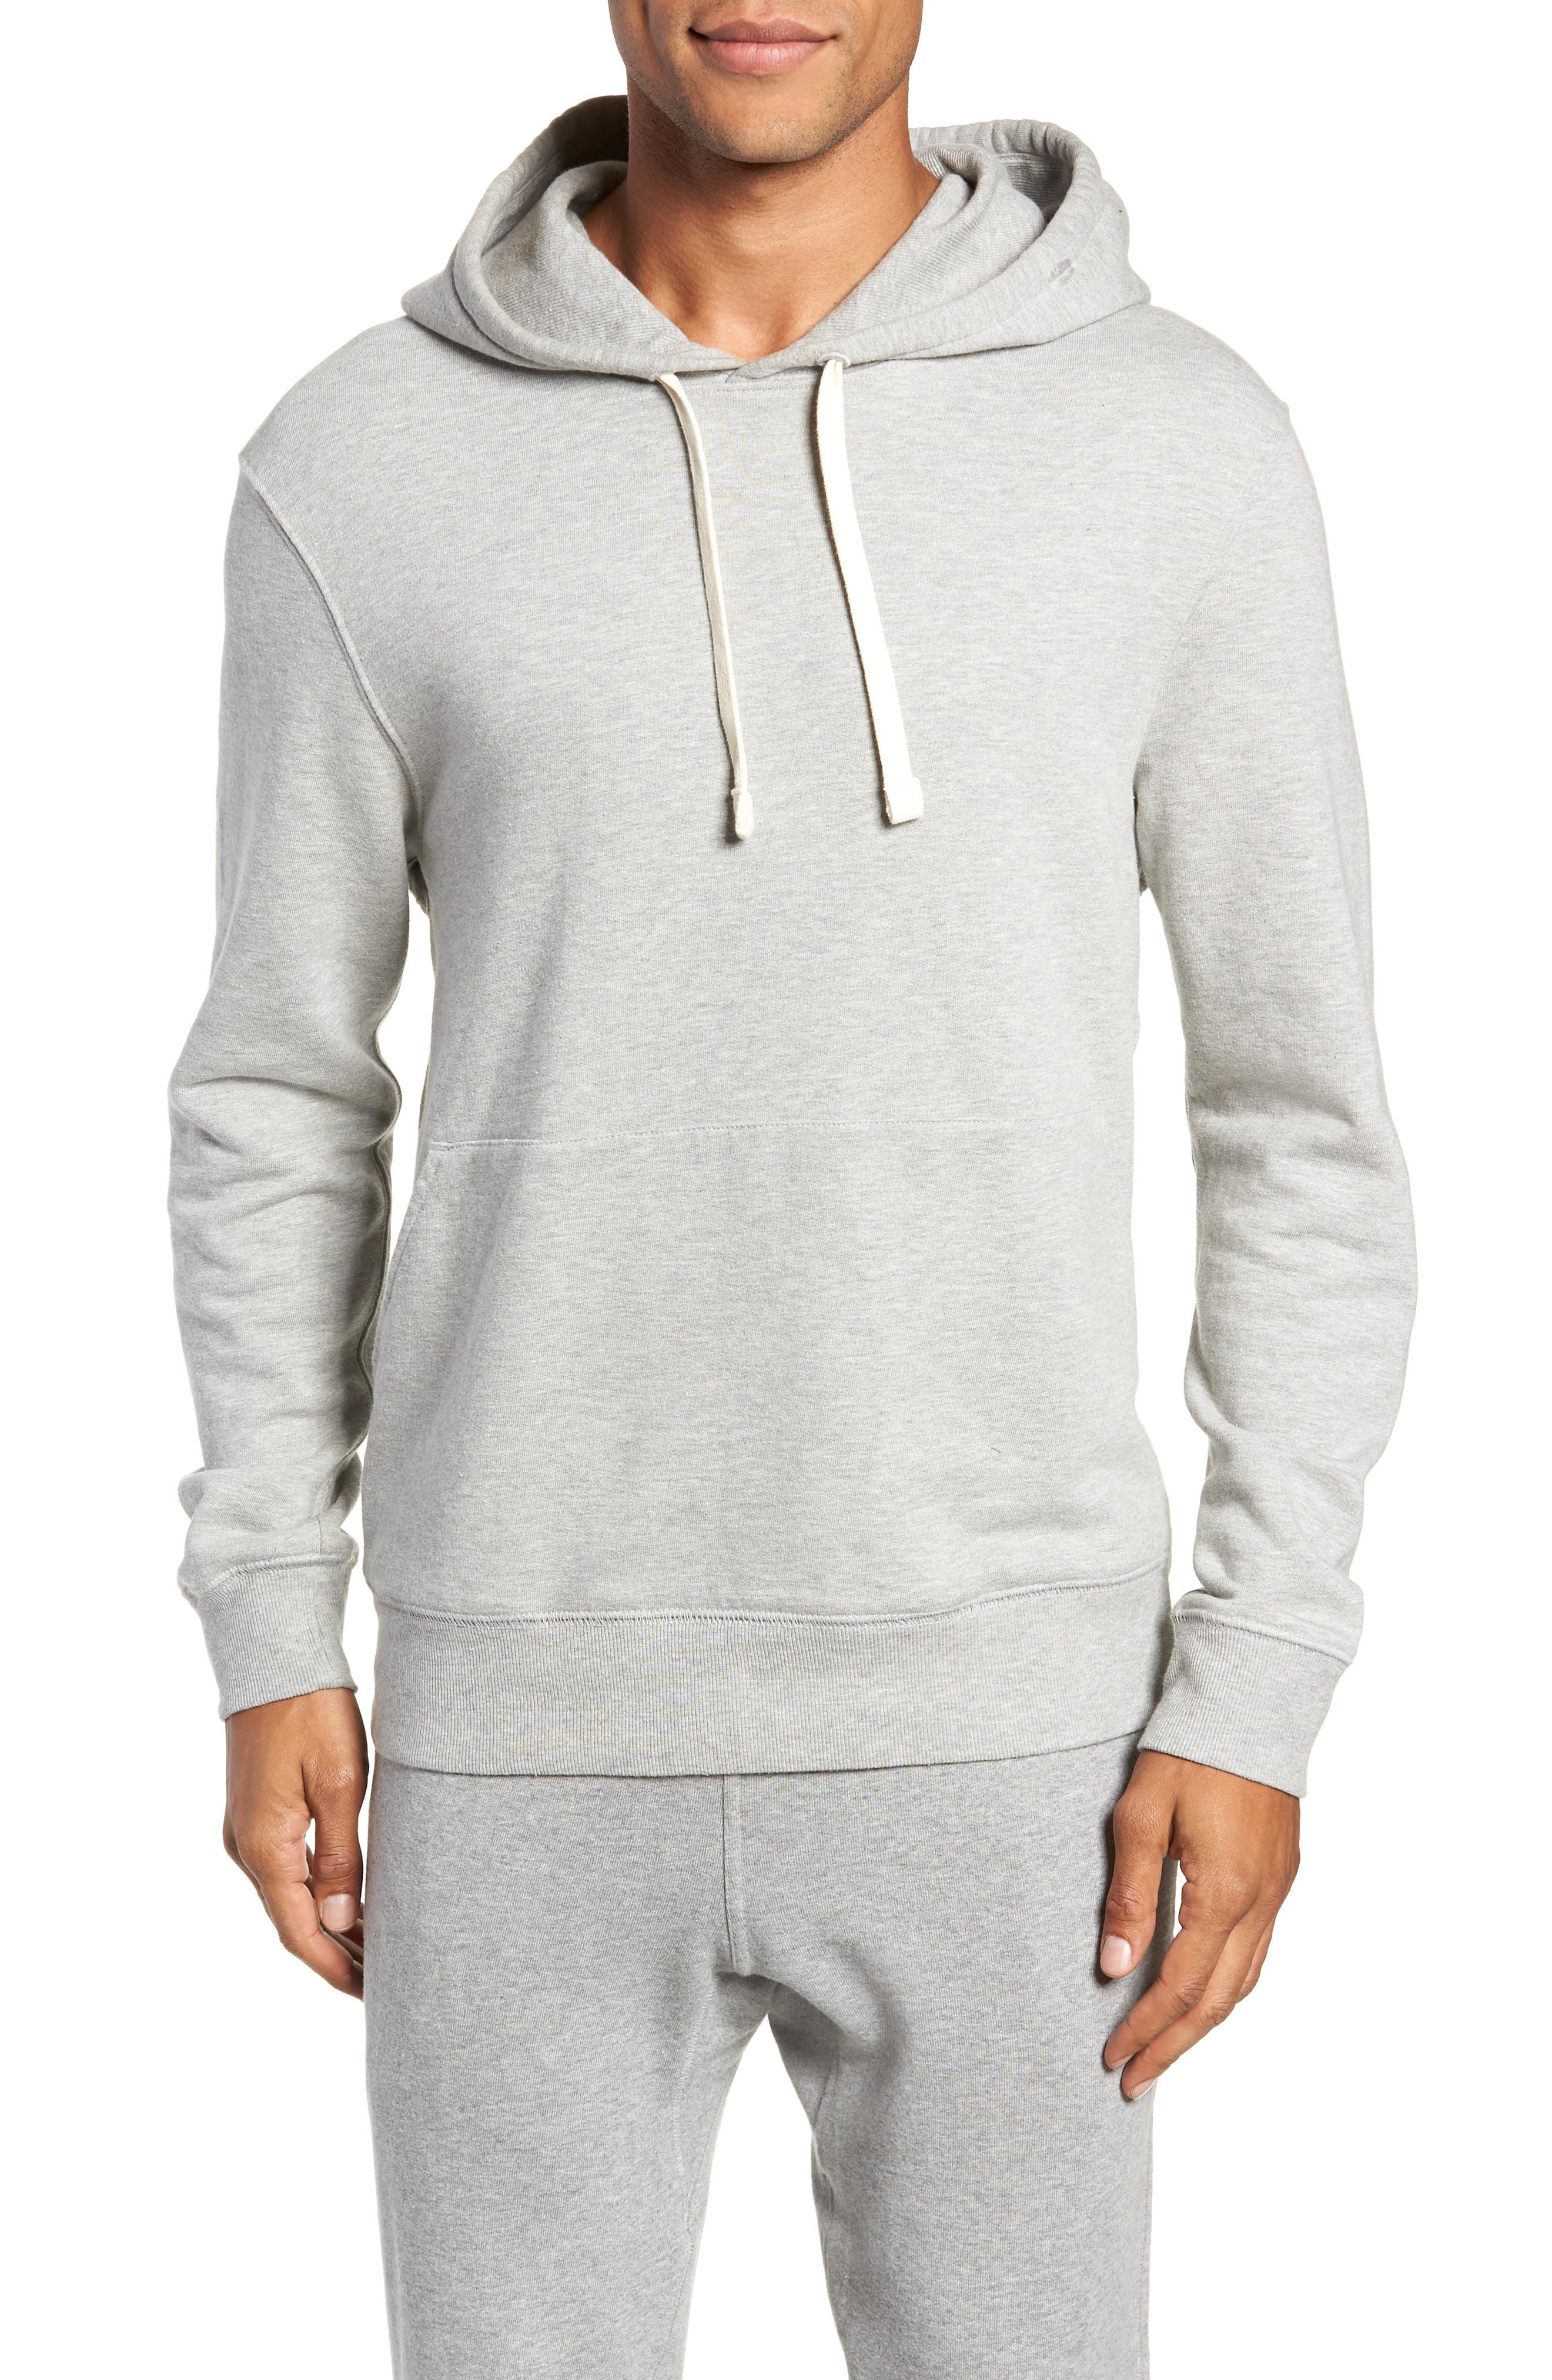 RICHER POORER, Hoodie, Main thumbnail 1, color, HEATHER GREY